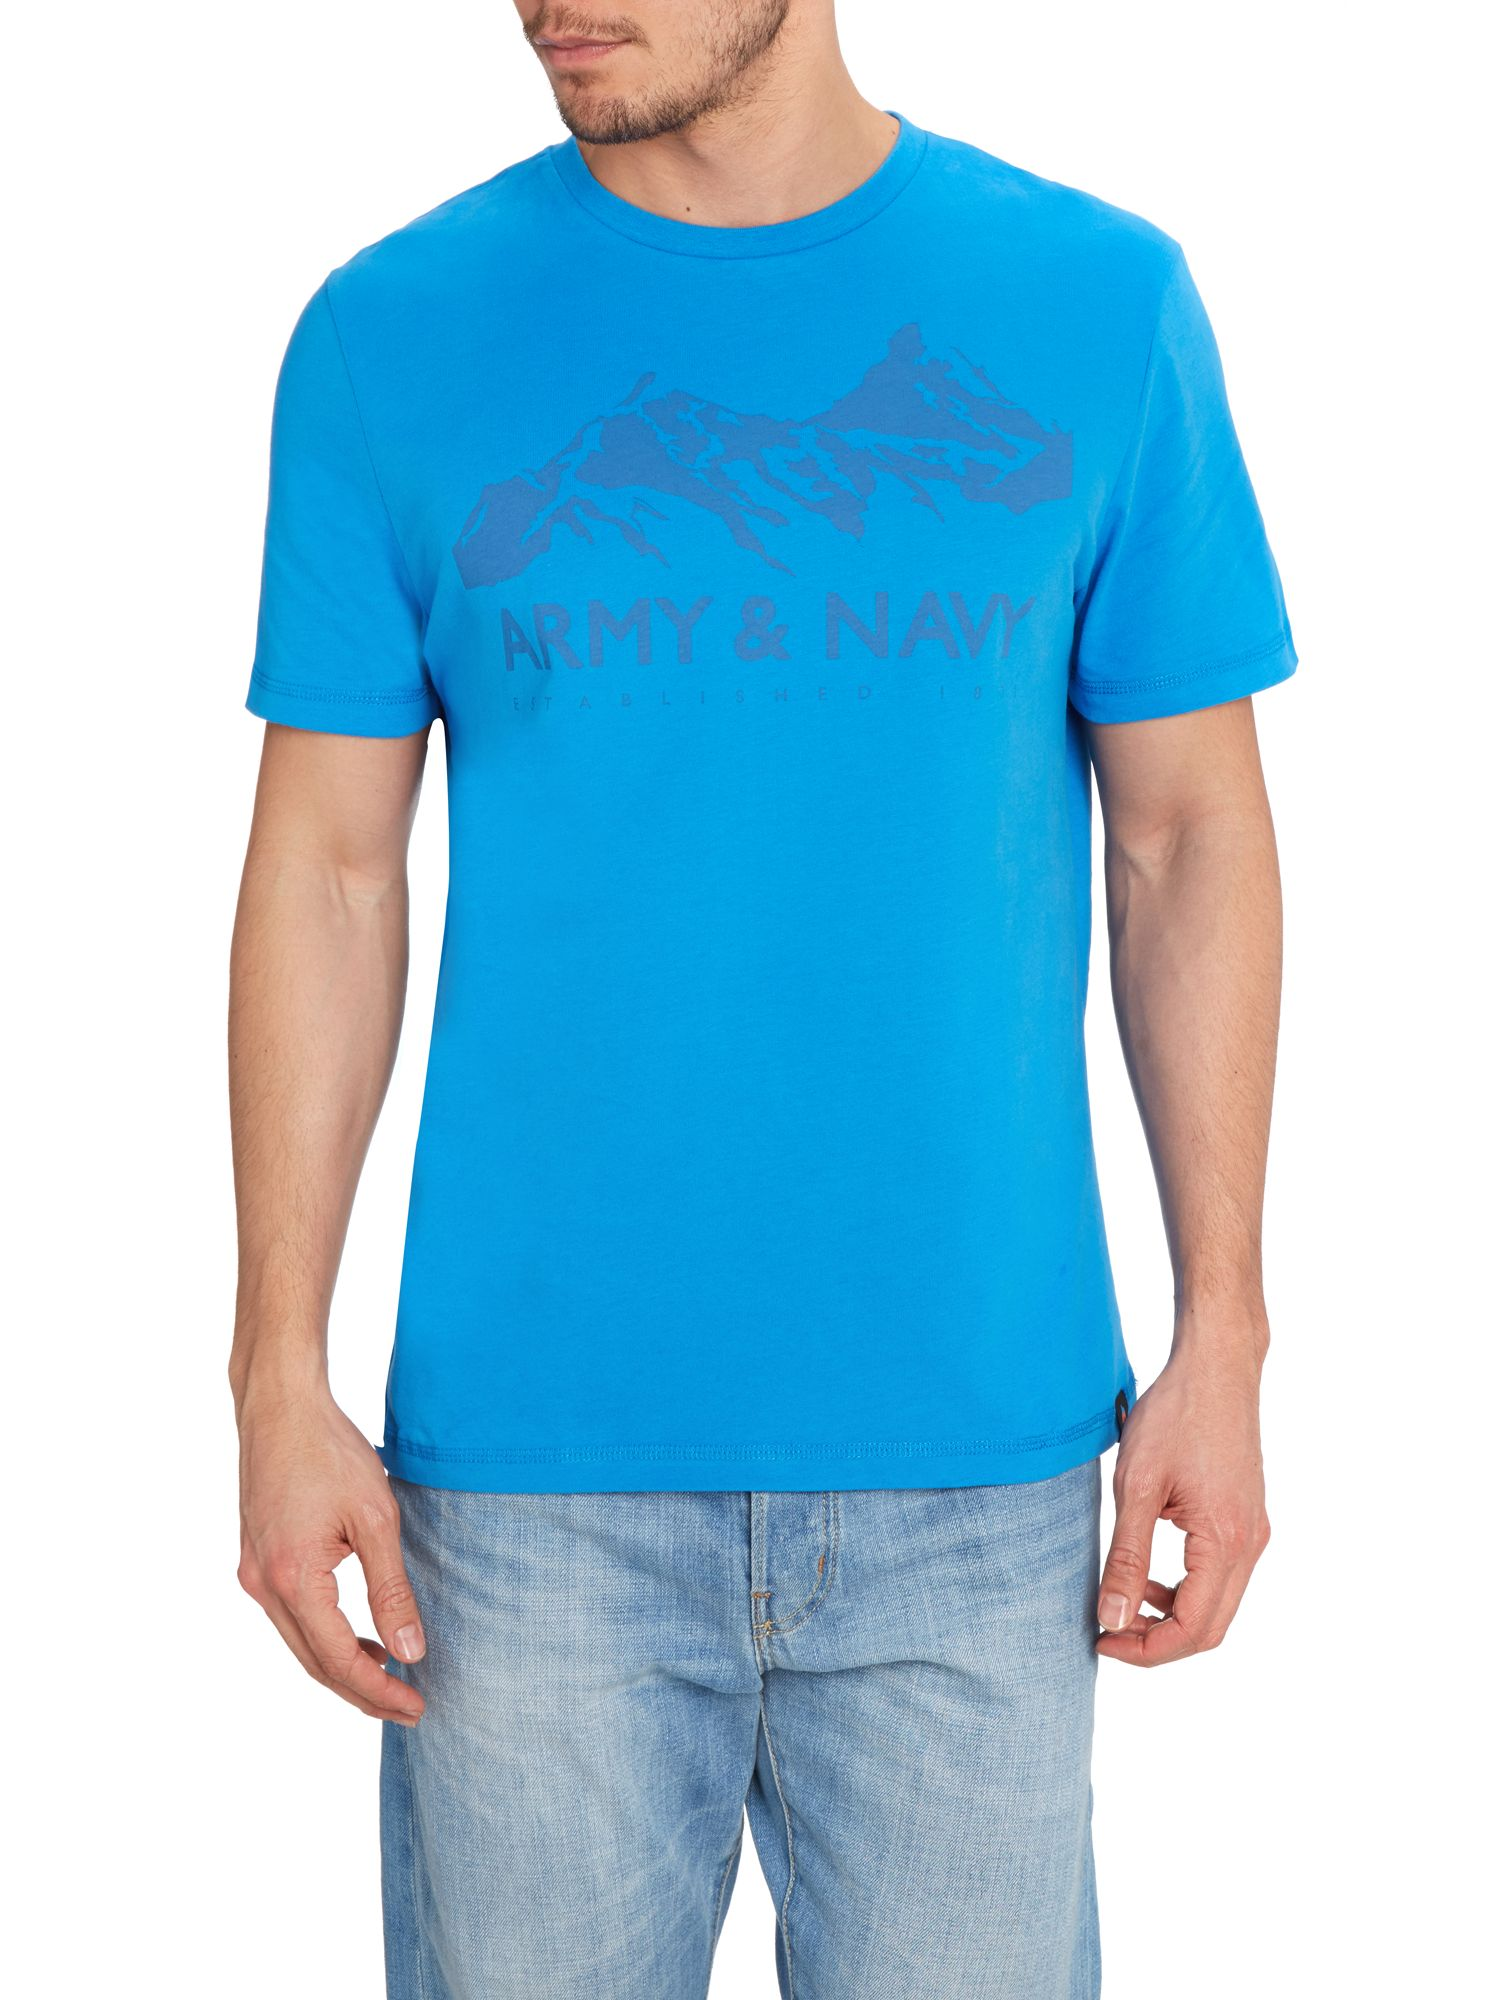 Mountain logo graphic tee